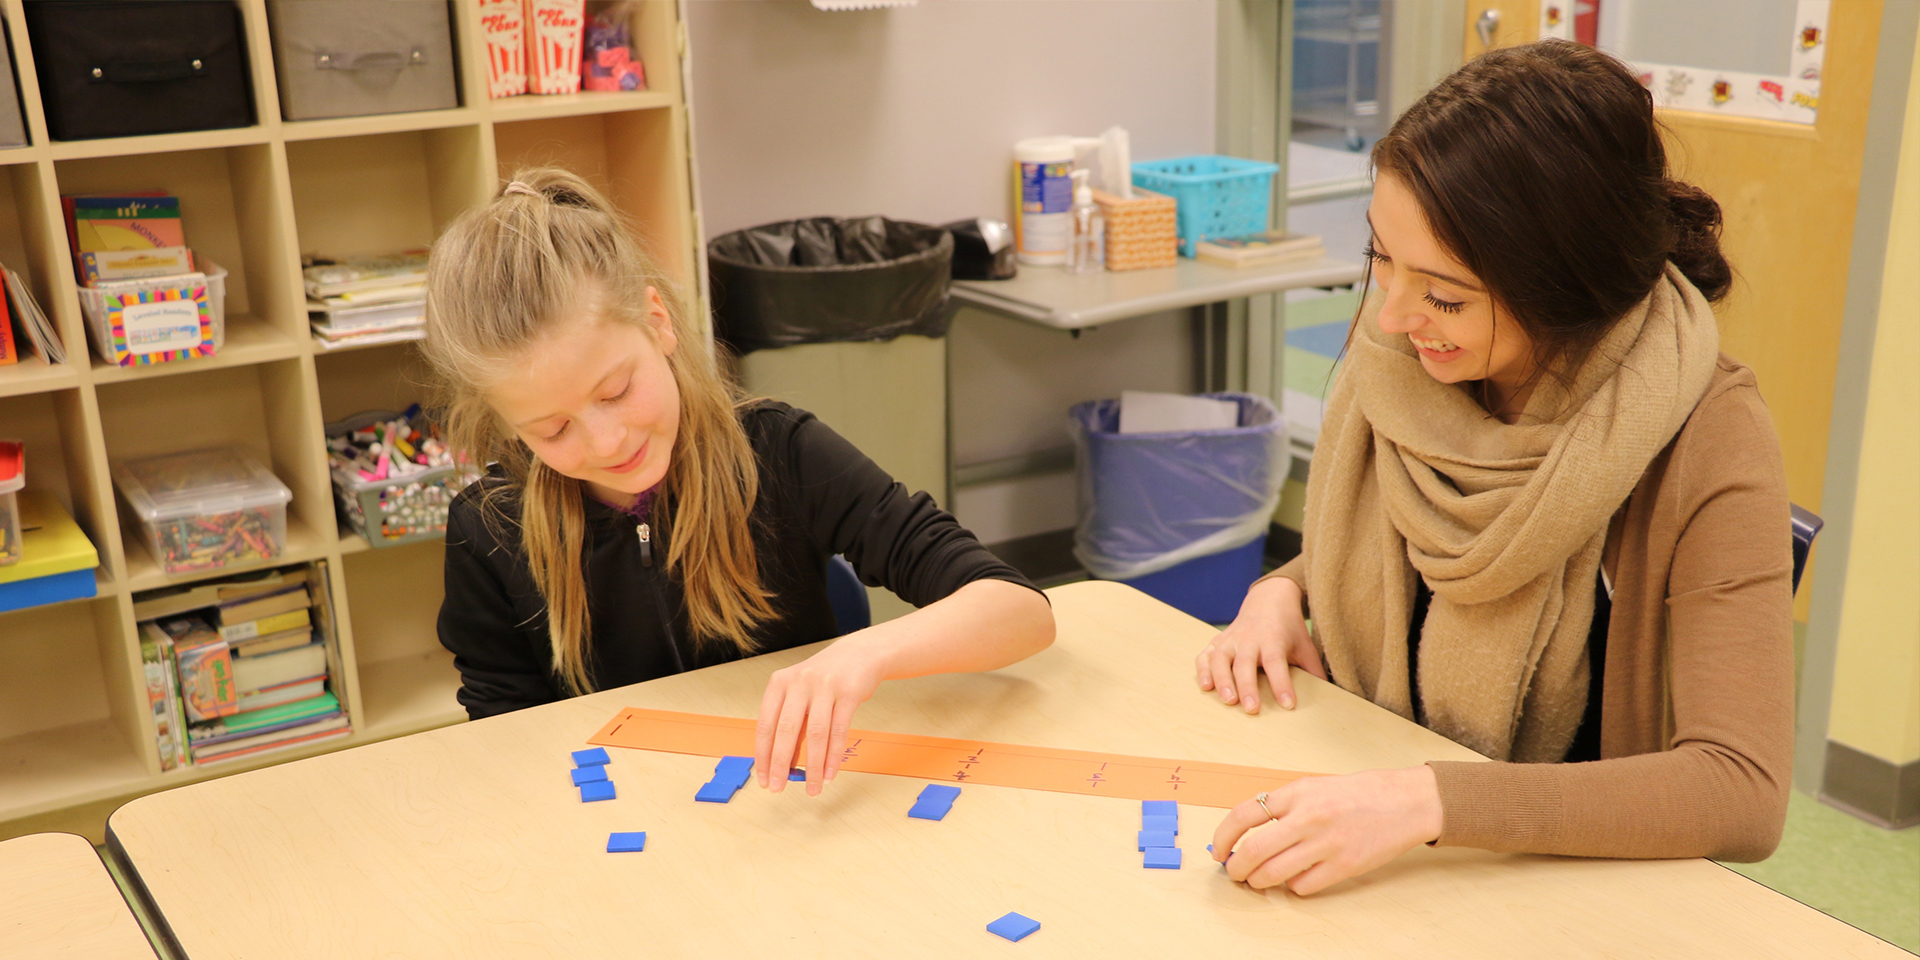 Student teacher teaches a student about fractions with a number line